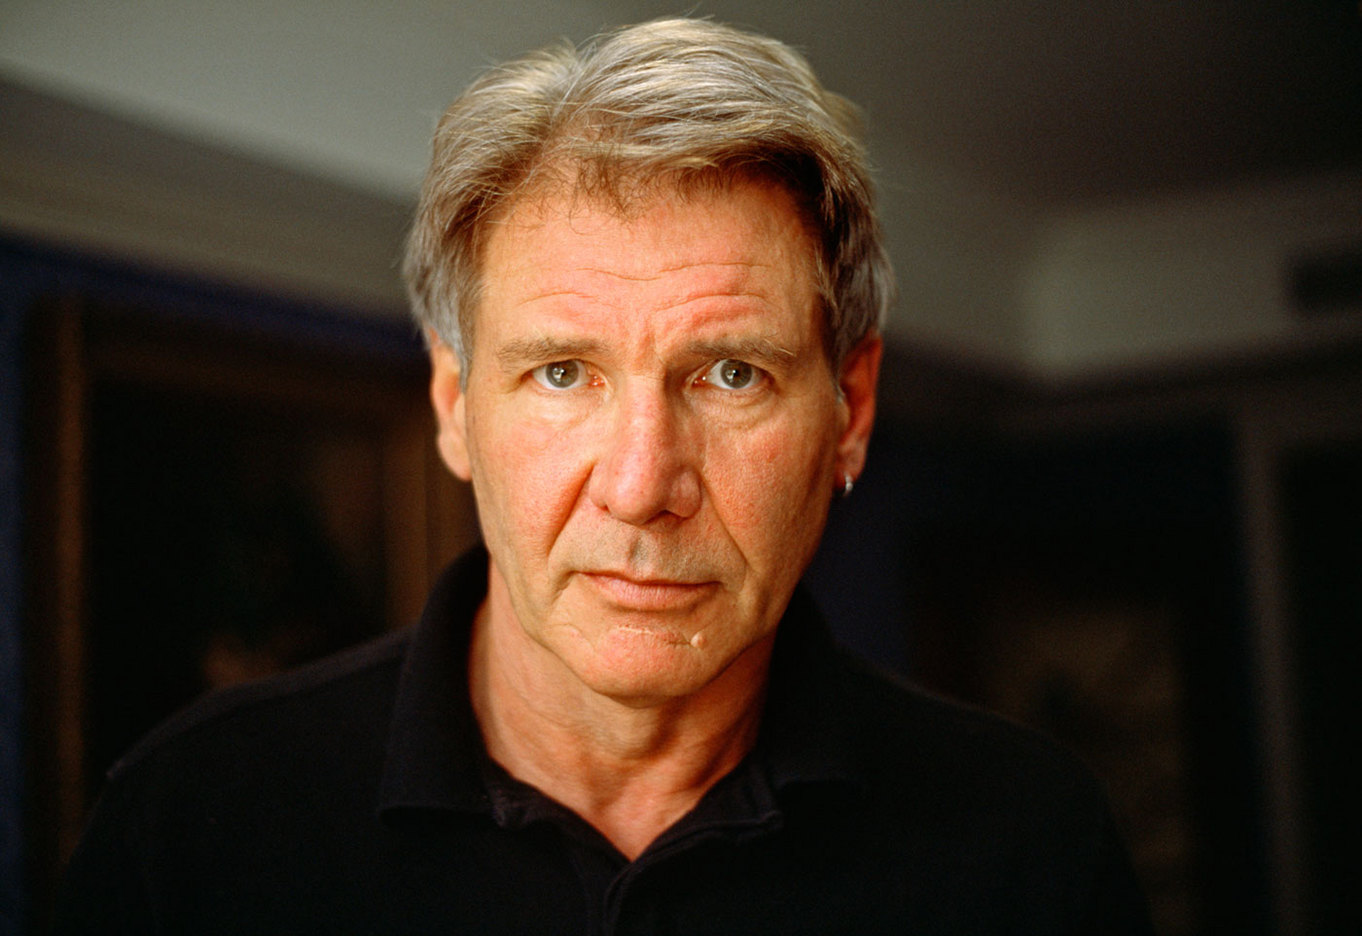 Harrison Ford  : PORTRAITS : Viviane Moos |  Documentary Photographer